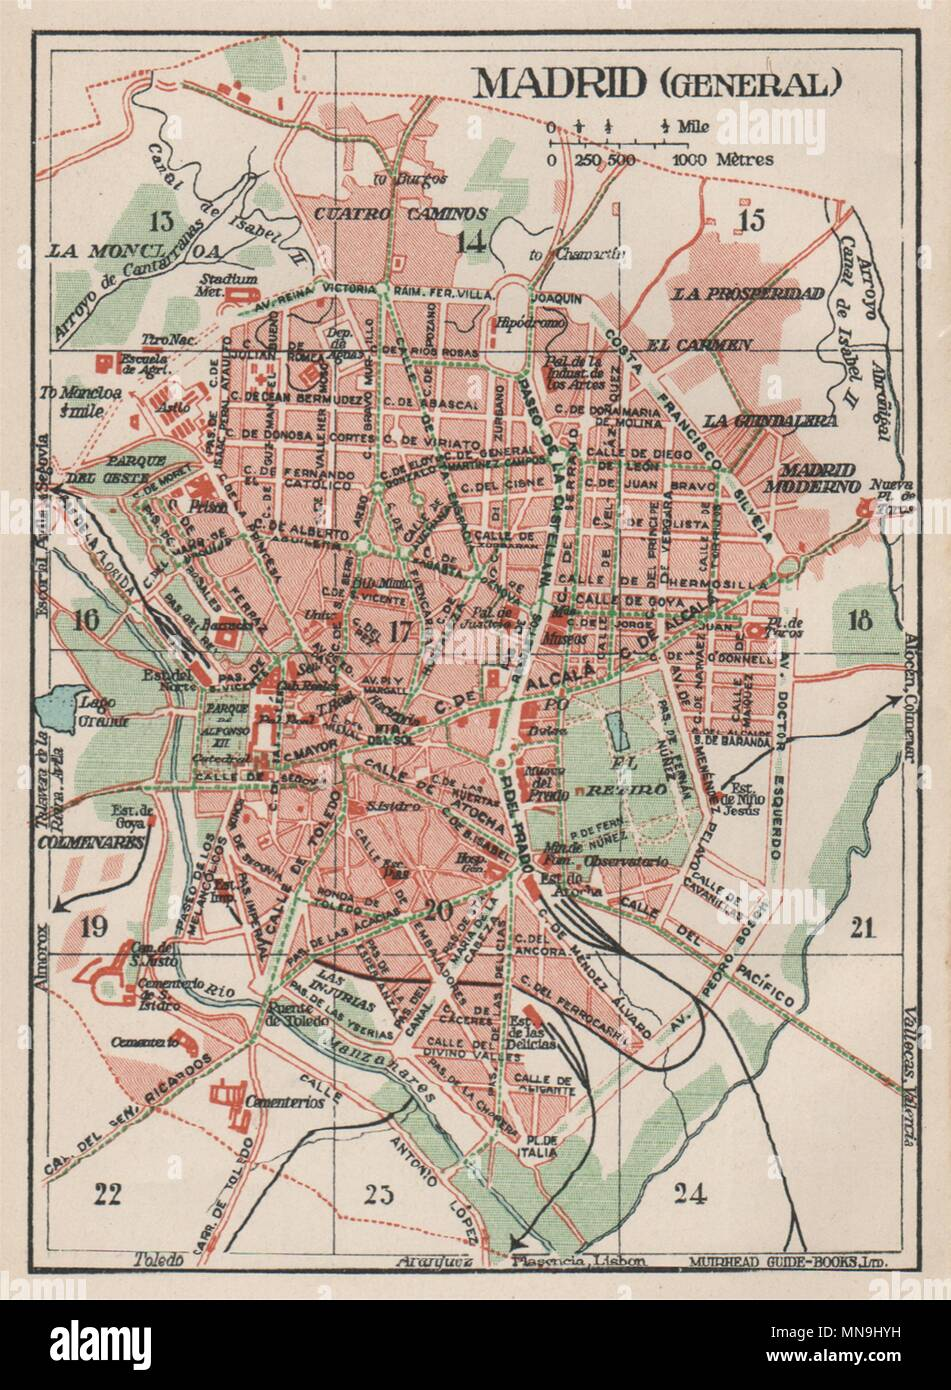 Map Of Spain 1930.Madrid Vintage Town City Map Plan Spain 1930 Old Vintage Chart